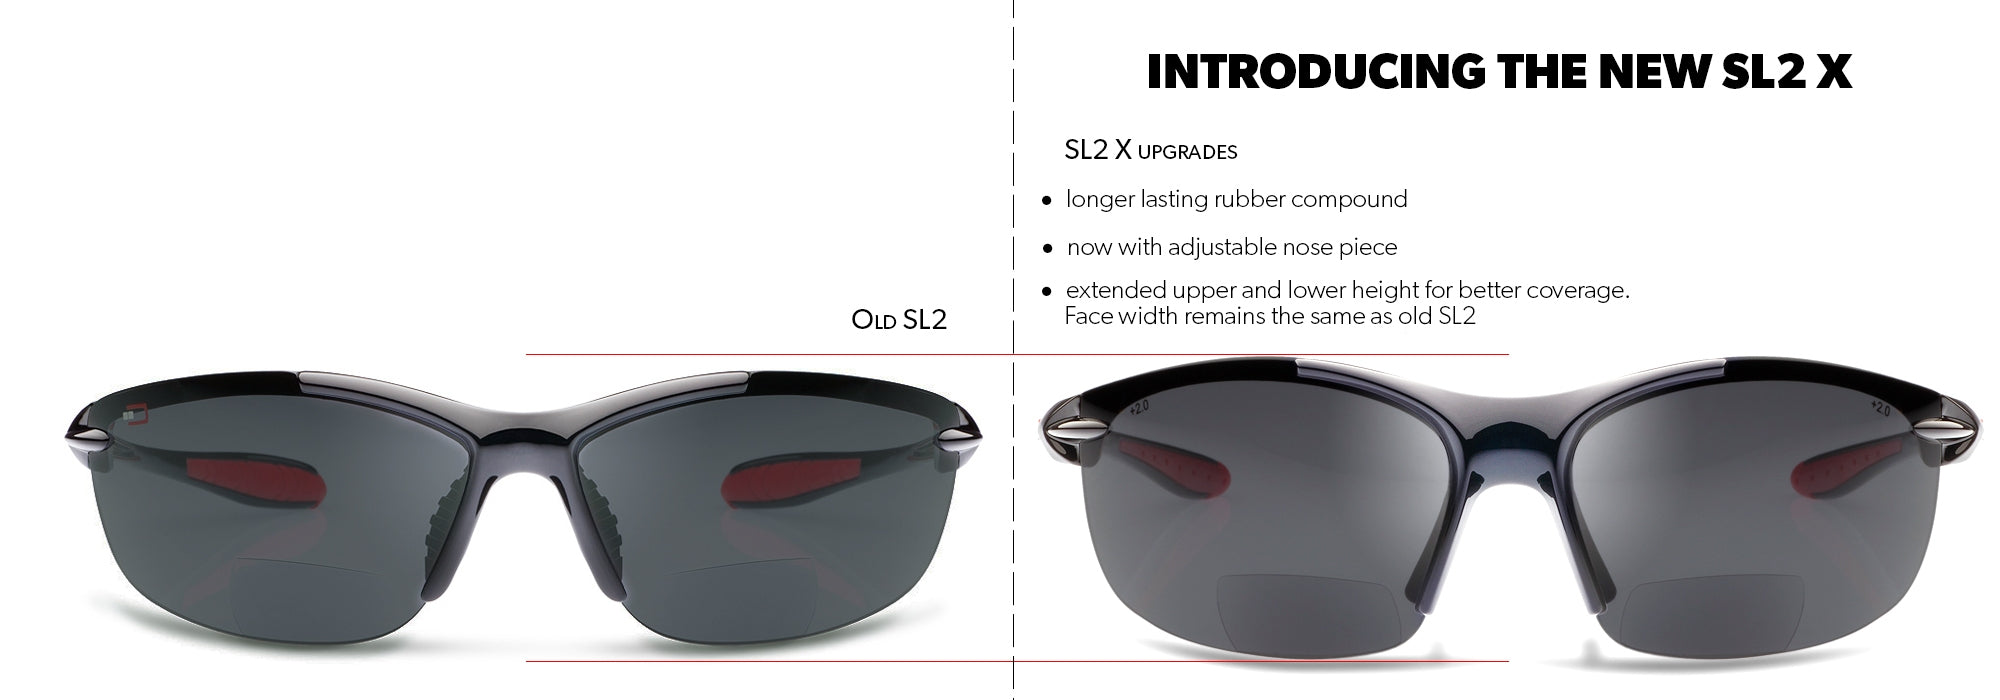 NEW, UPGRADED DESIGN SL2-X BIFOCAL SUNGLASSES – READING SUNGLASSES WITH A WRAP-AROUND FIT DESIGNED FOR CYCLING AND SPORTS